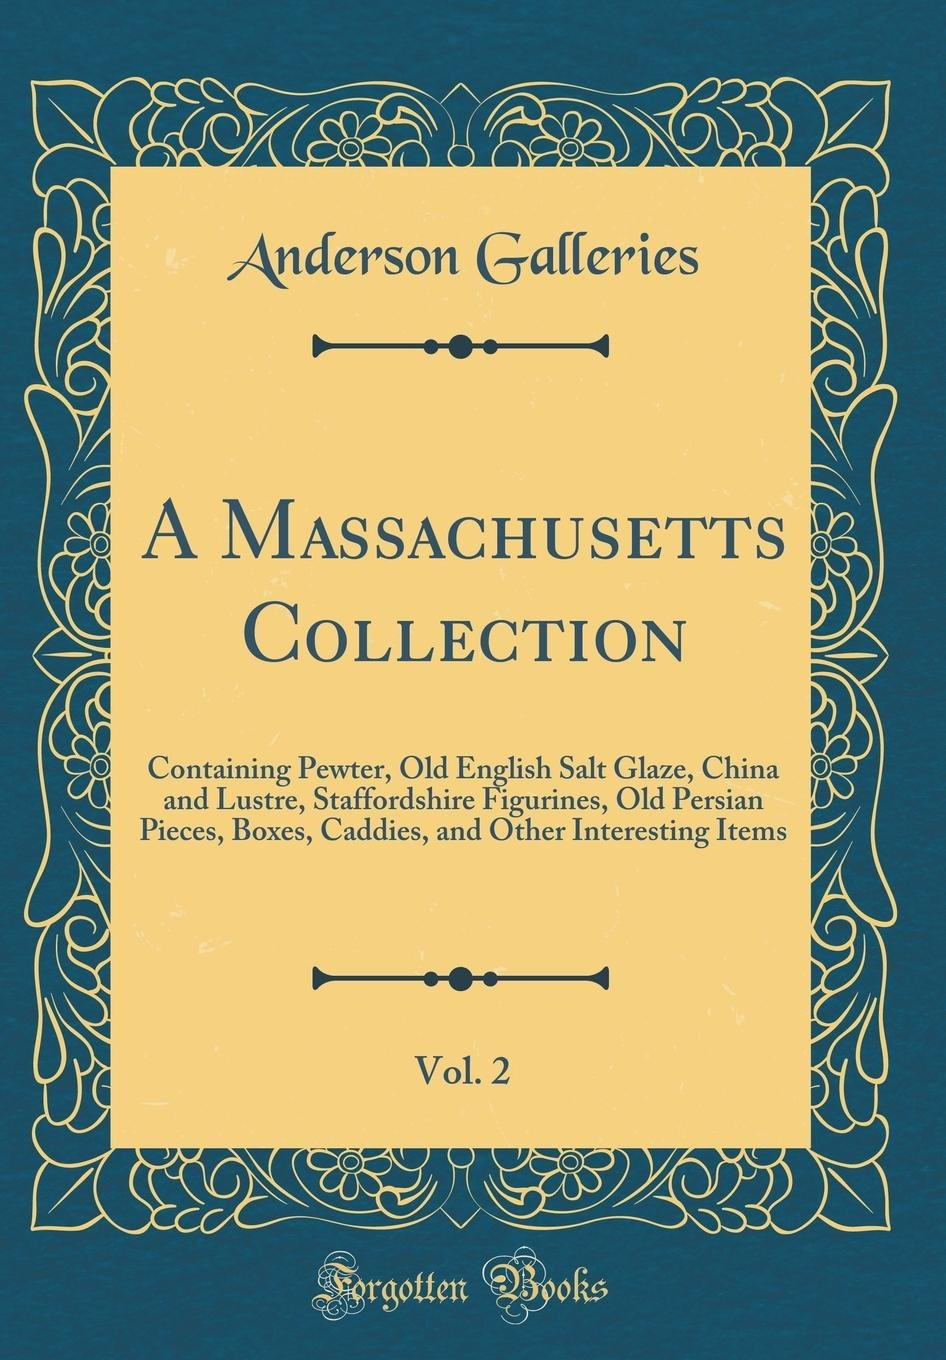 A Massachusetts Collection, Vol. 2: Containing Pewter, Old English Salt Glaze, China and Lustre, Staffordshire Figurines, Old Persian Pieces, Boxes, ... and Other Interesting Items (Classic Reprint) pdf epub